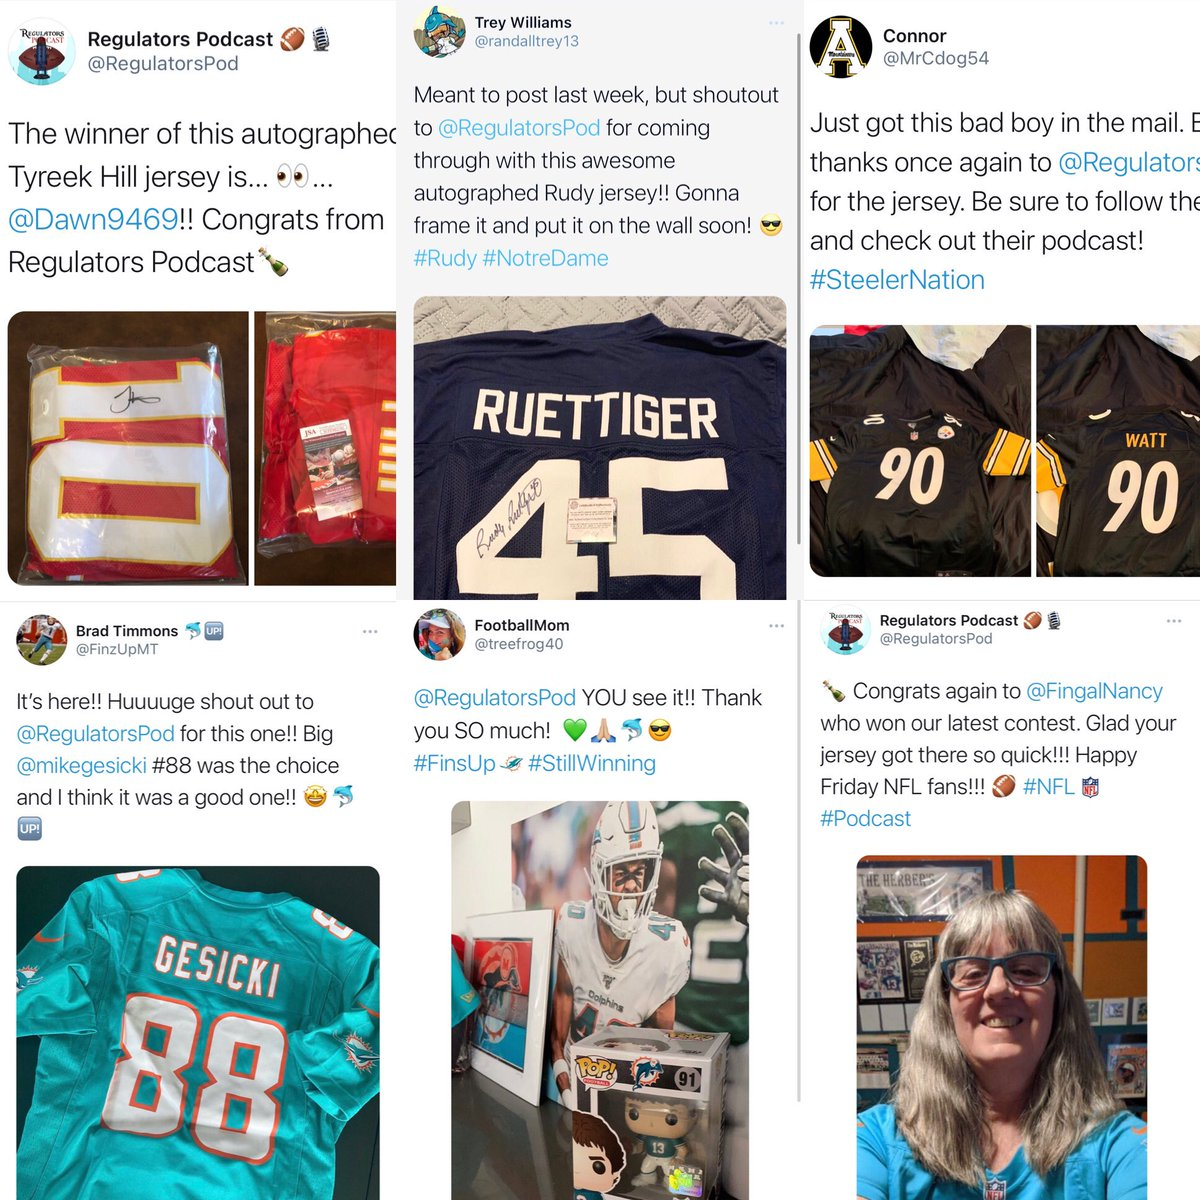 But does your favorite #NFL podcast show you the love? Mad respect ✊🏼 to the Regulators around the world. @Dawn9469 @randalltrey13 @MrCdog54 @FinzUpMT @FingalNancy